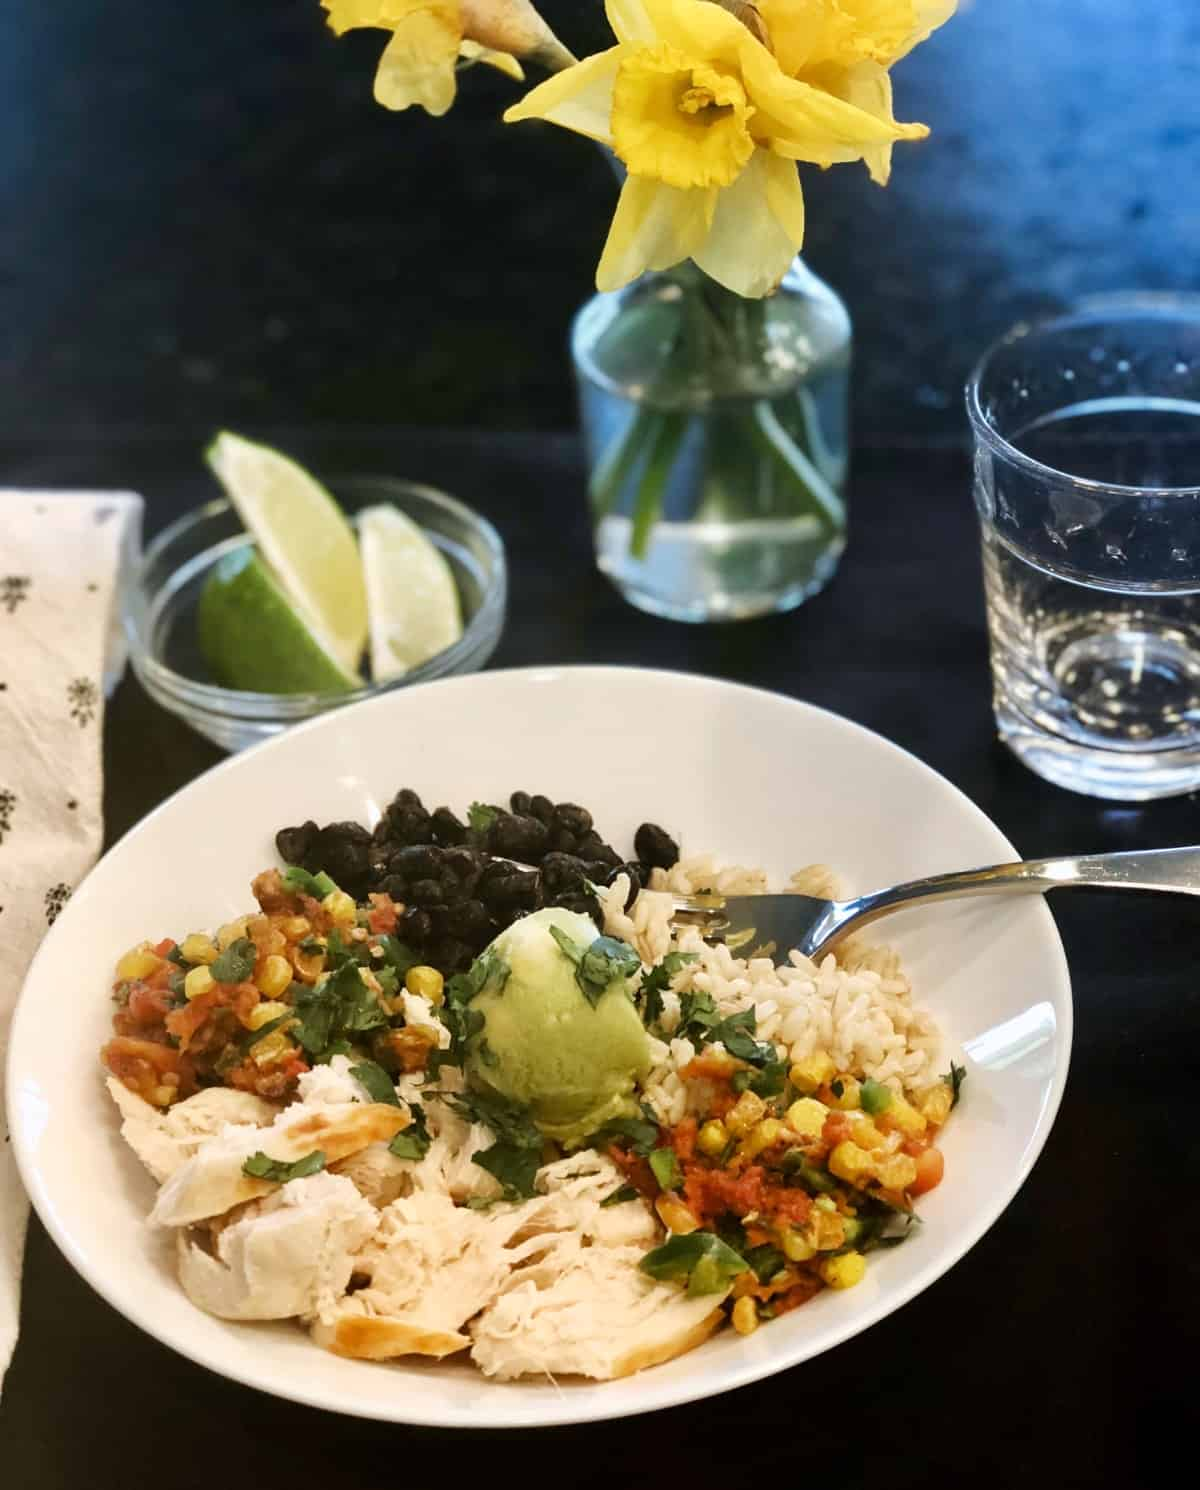 Chicken and black bean bowl on dinner table with lime slices and fresh flowers.